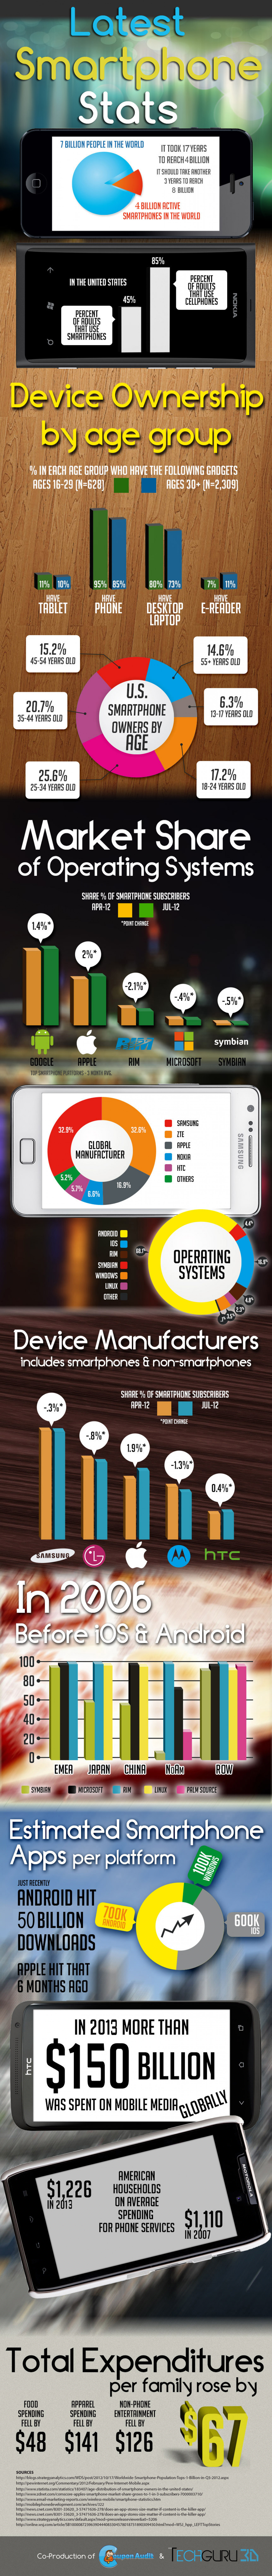 Latest Smartphone Stats Infographic